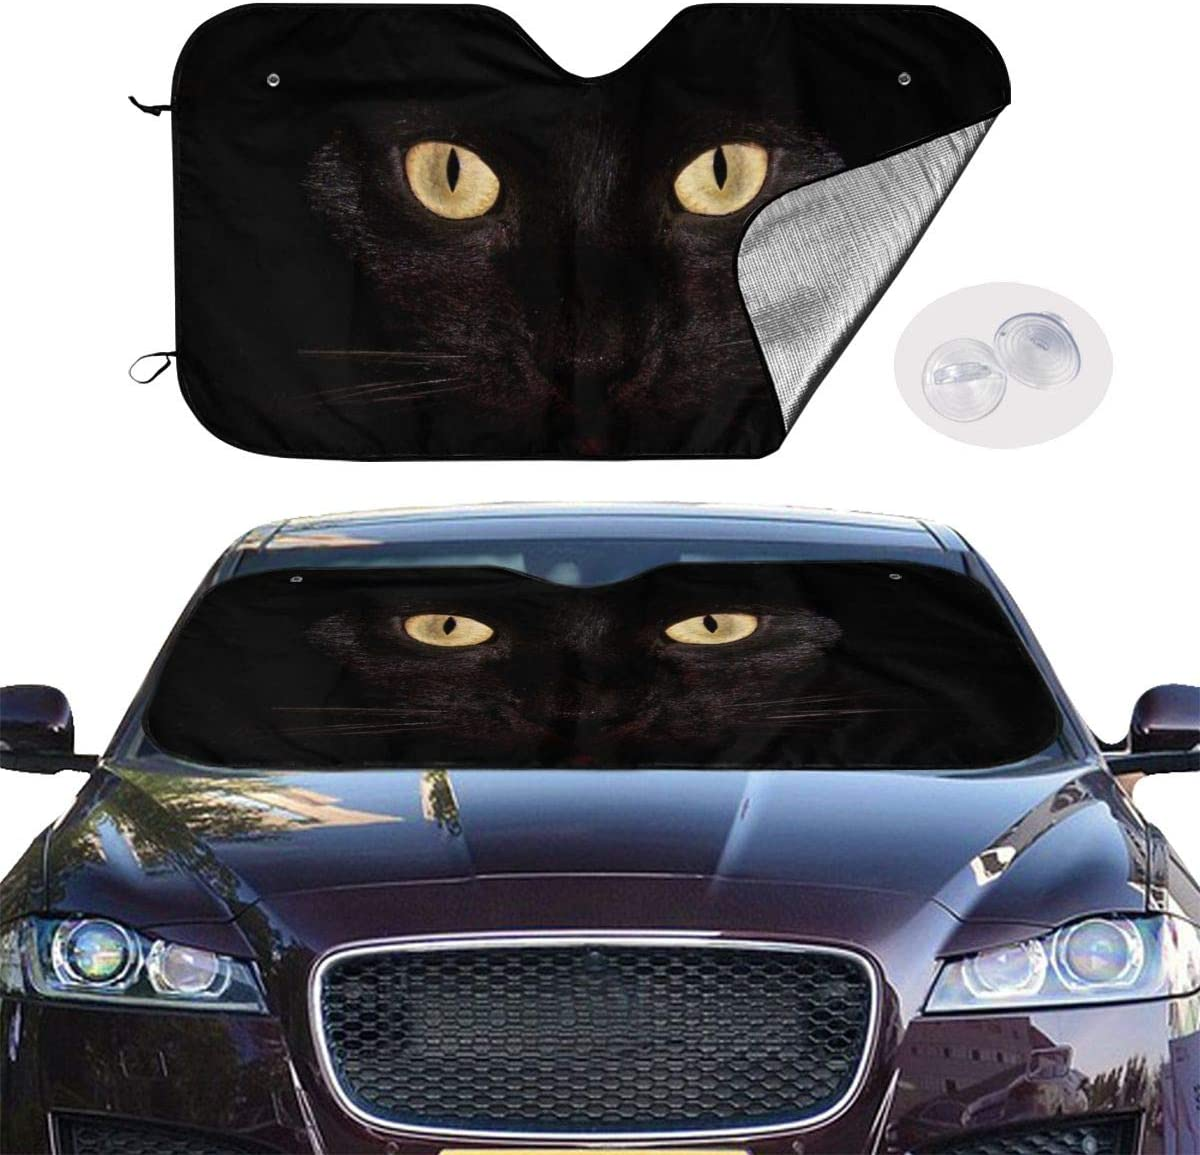 Blue Cats Eye Car Windshield Sunshade 27.5 X 51 in Funny Auto Front Window Sun Shade Keeps Vehicle Cool Uv Rays for Truck SUV Accessories